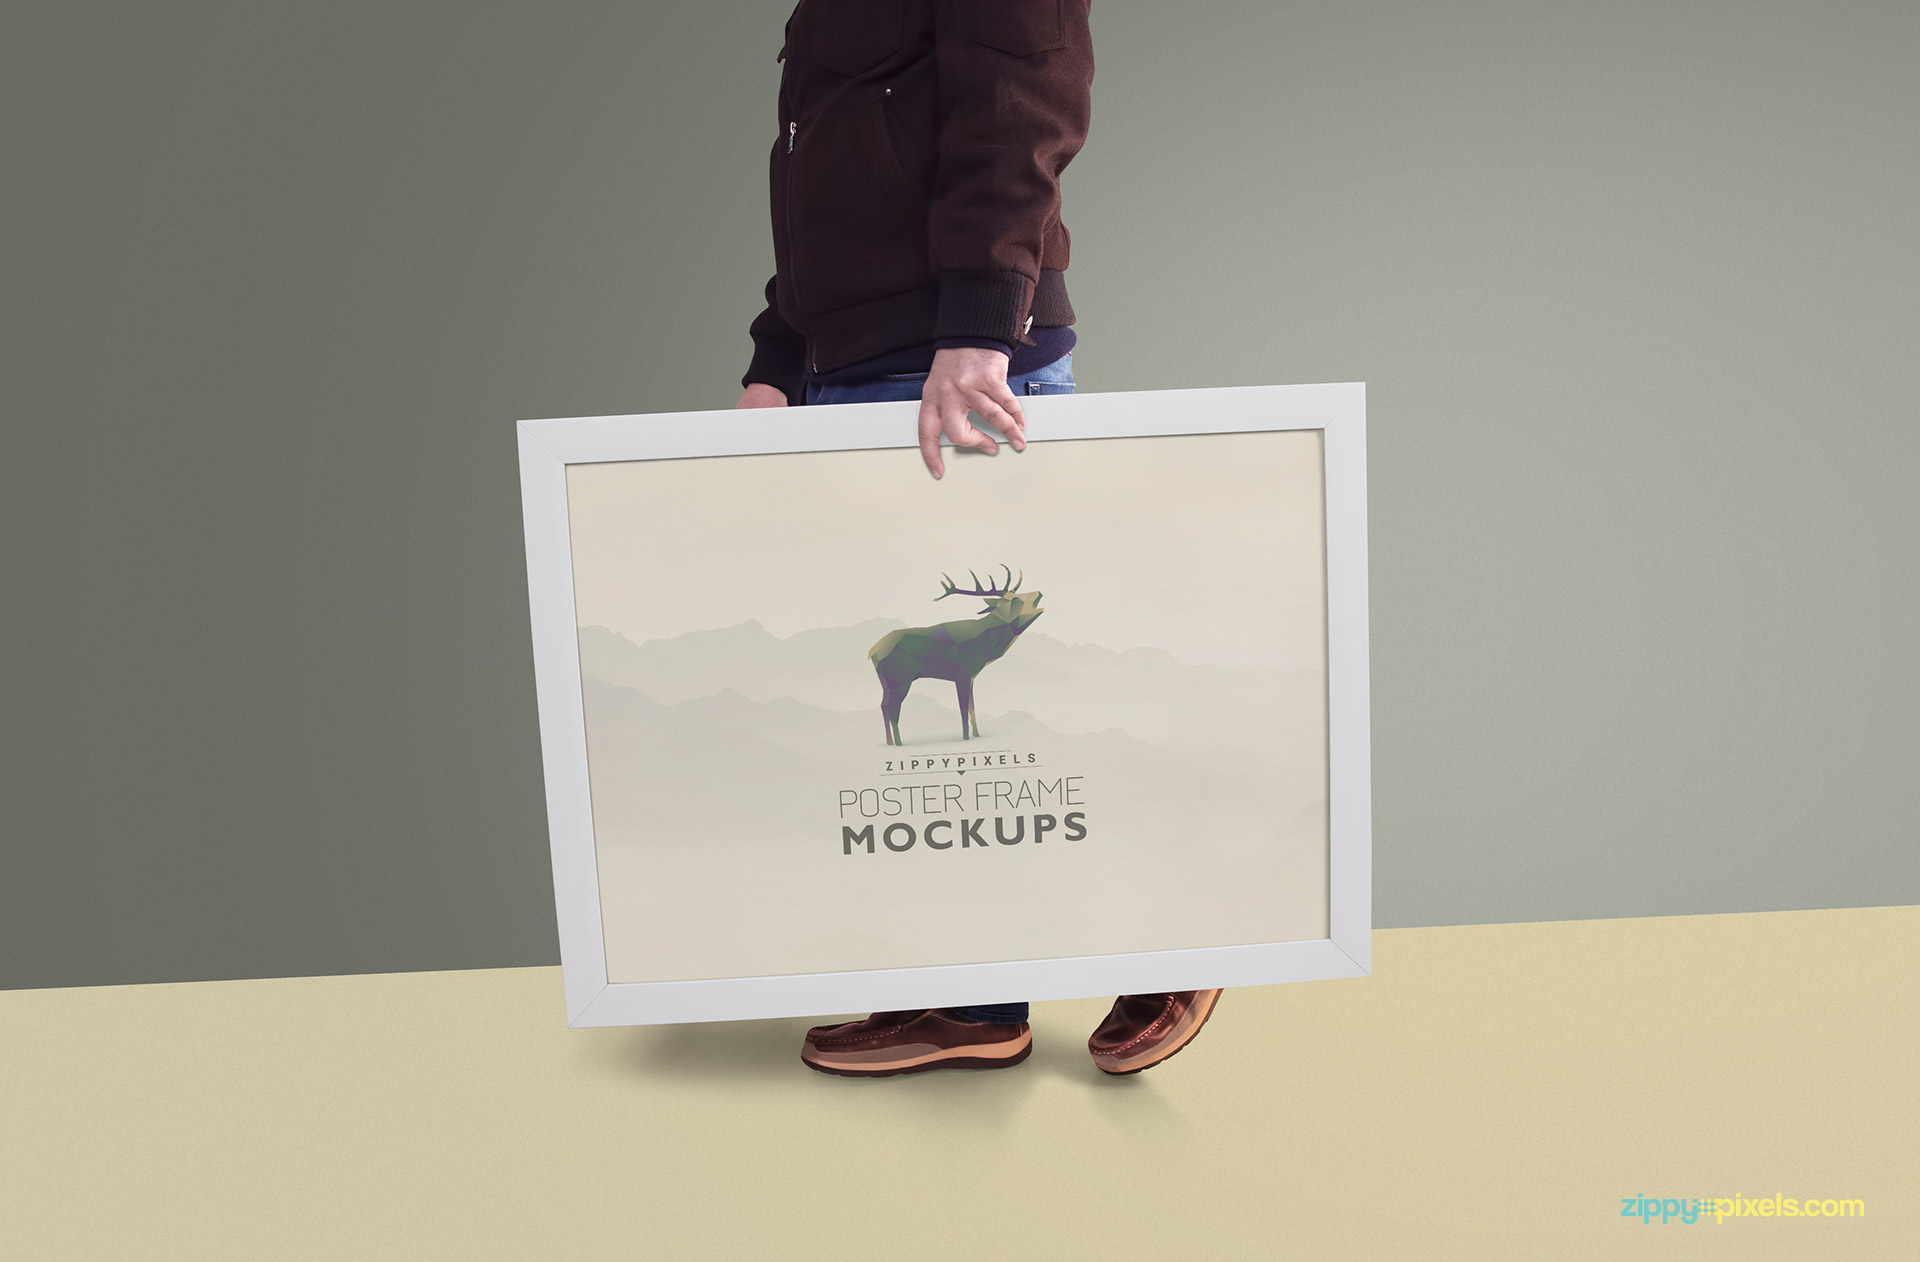 Poster frame mockup - person carrying picture frame